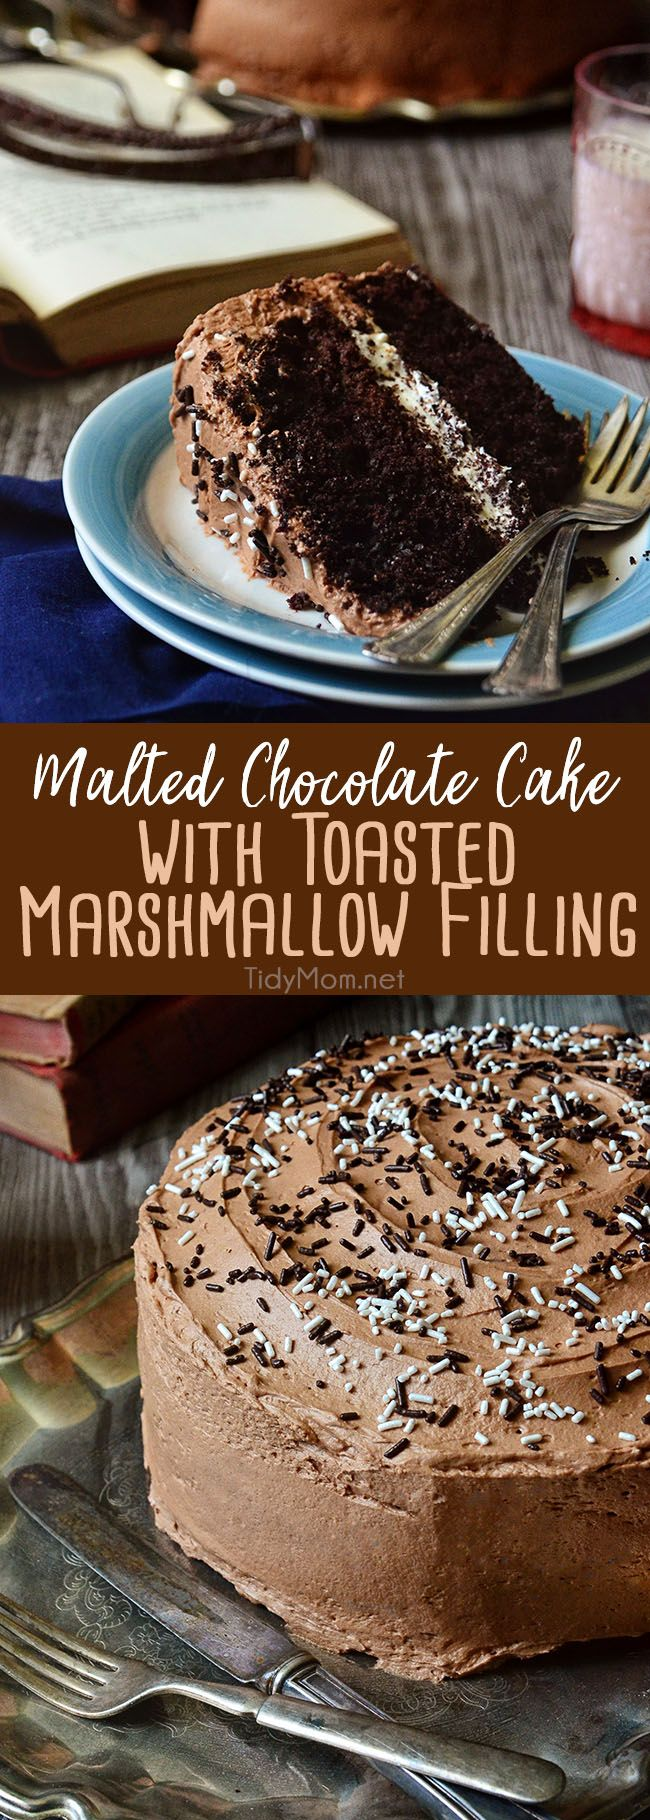 Best 25+ Toasted marshmallow ideas on Pinterest | Recipe for cake ...